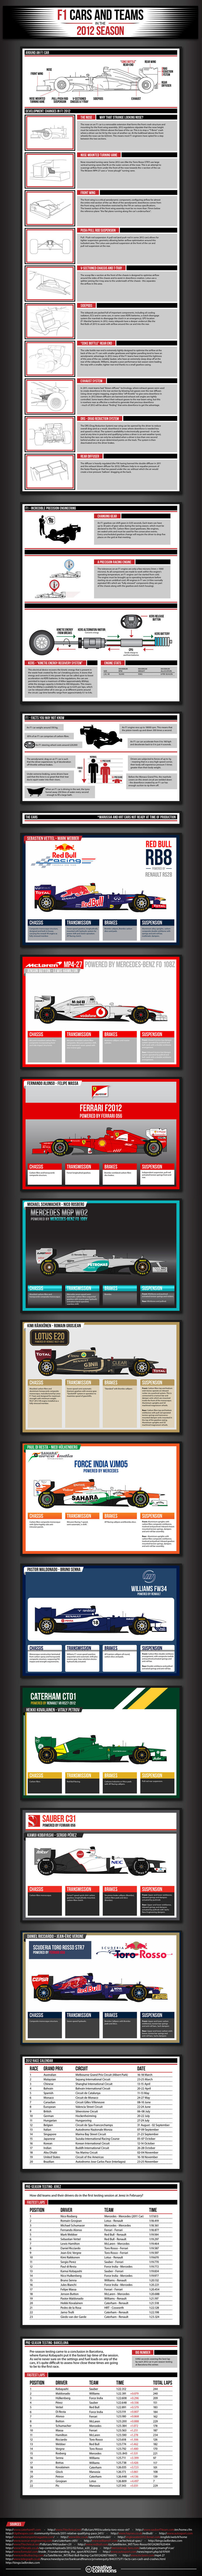 Car Infographics: F1 Cars and Teams in 2012 - image 458121